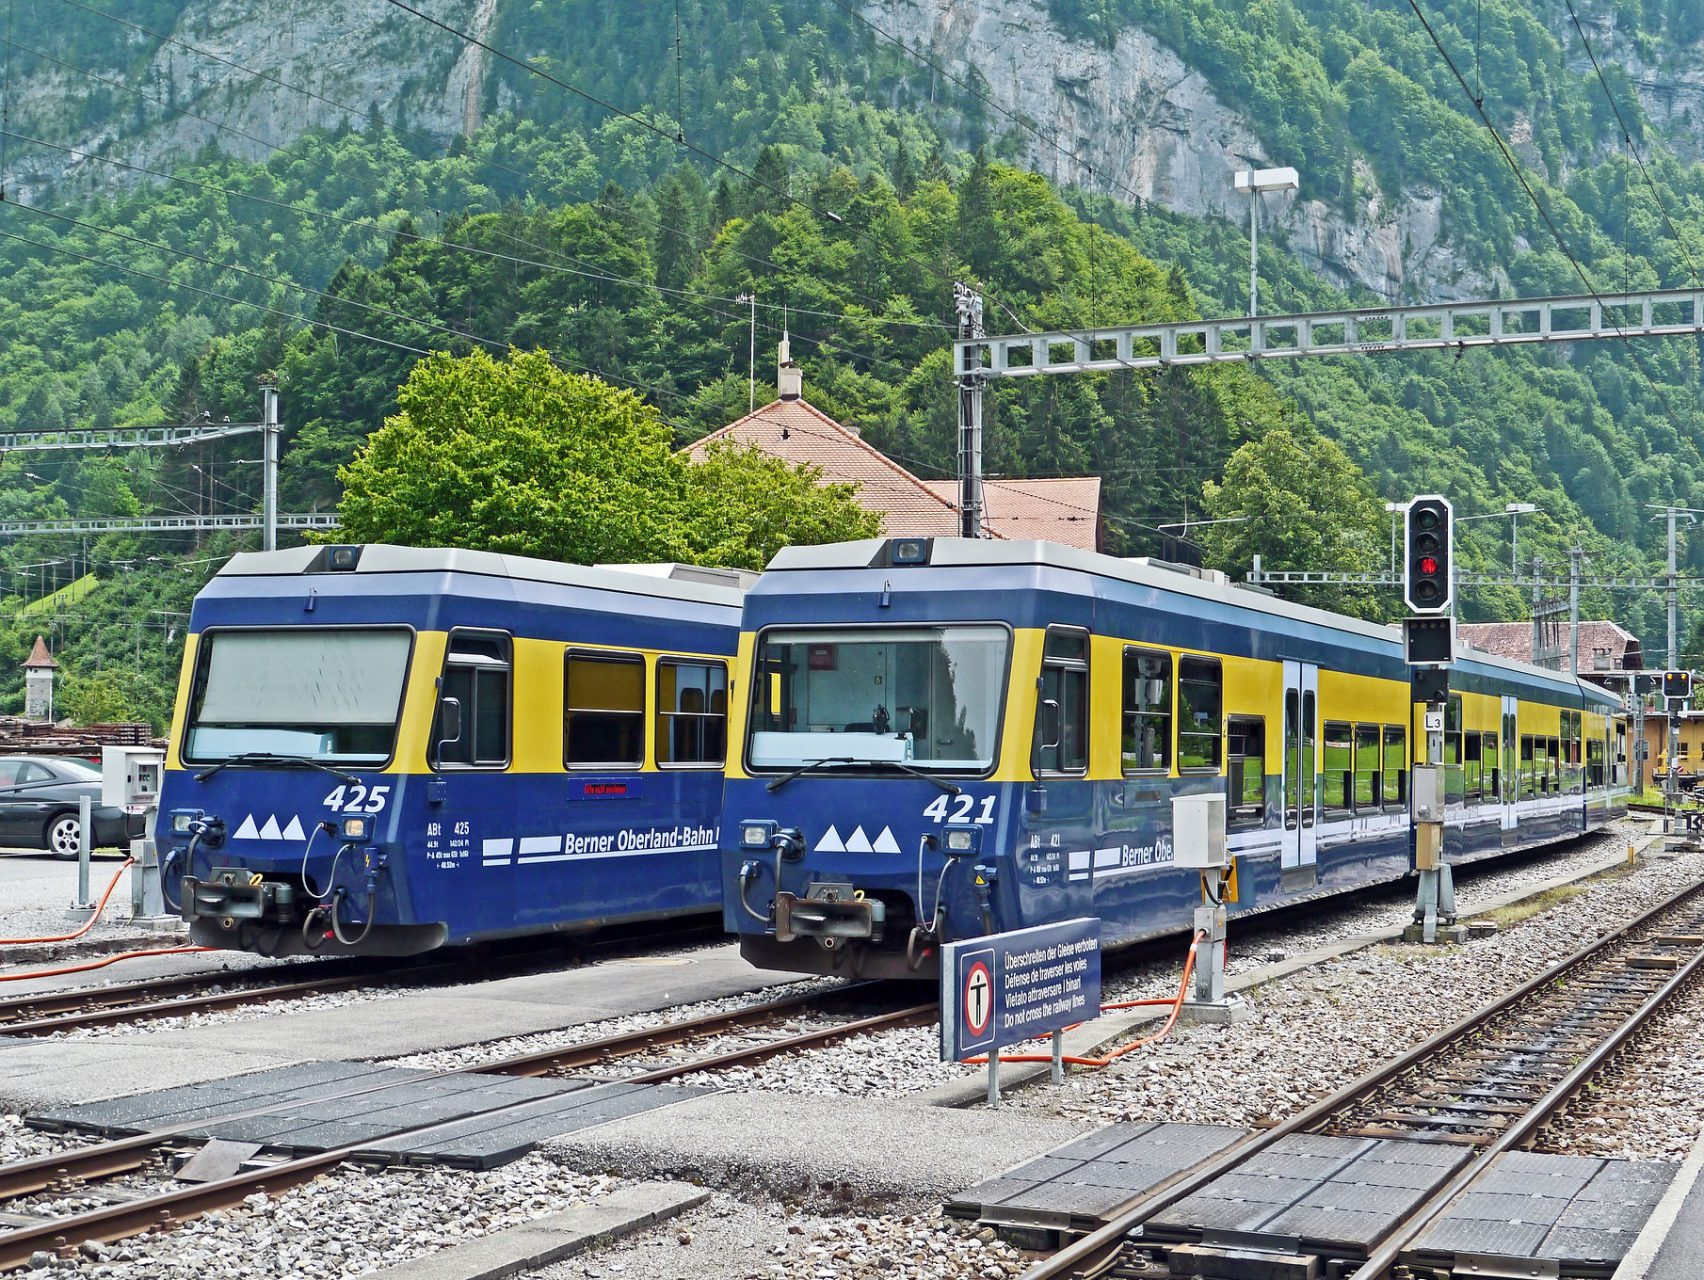 Berner Oberland Bahn (BOB) in Interlaken